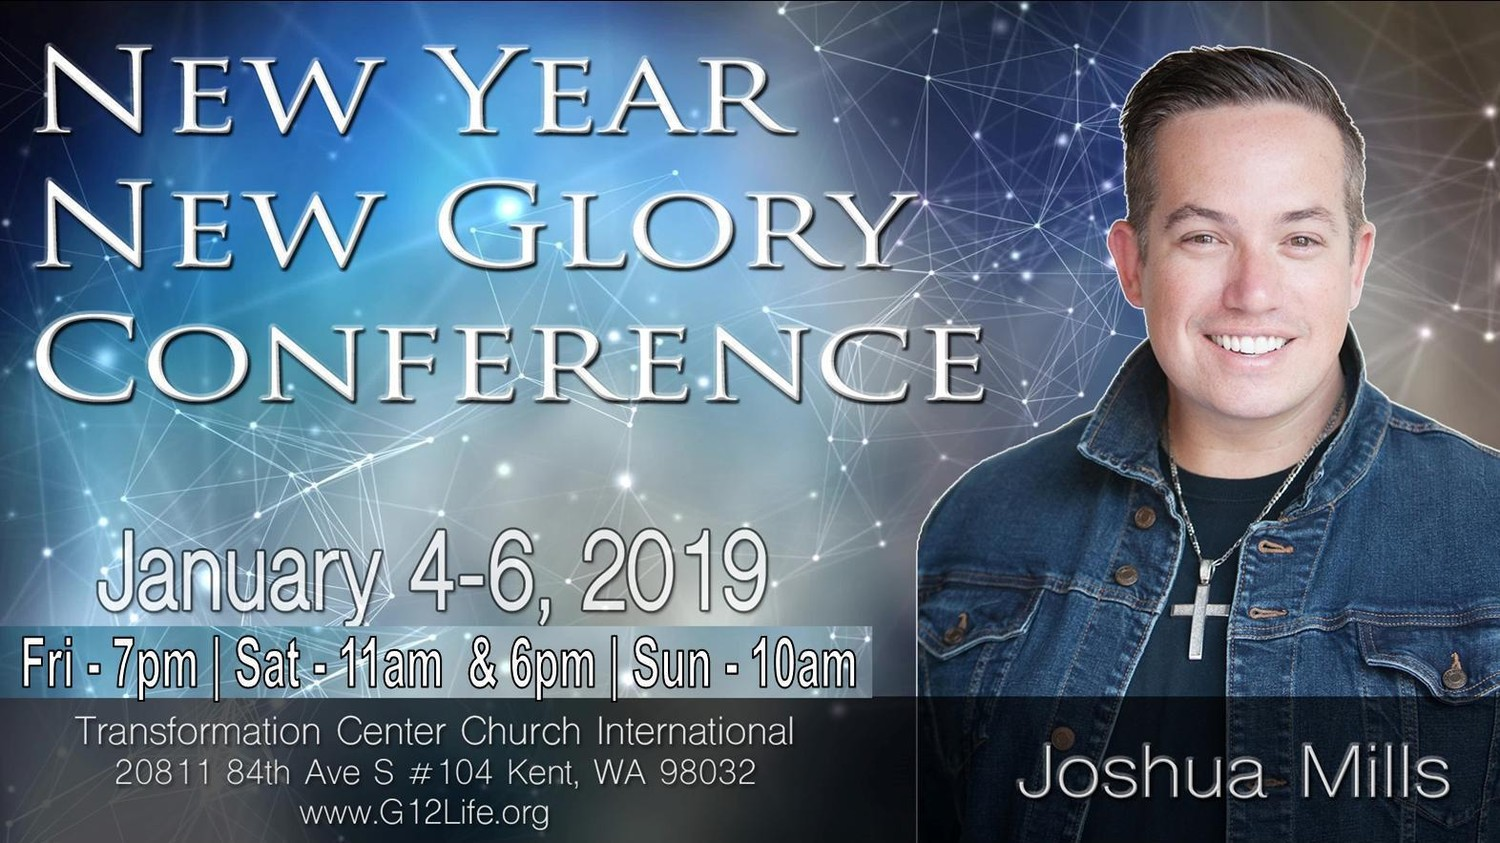 """New Year New Glory Conference"" With Joshua Mills (January 4-6, 2019)"